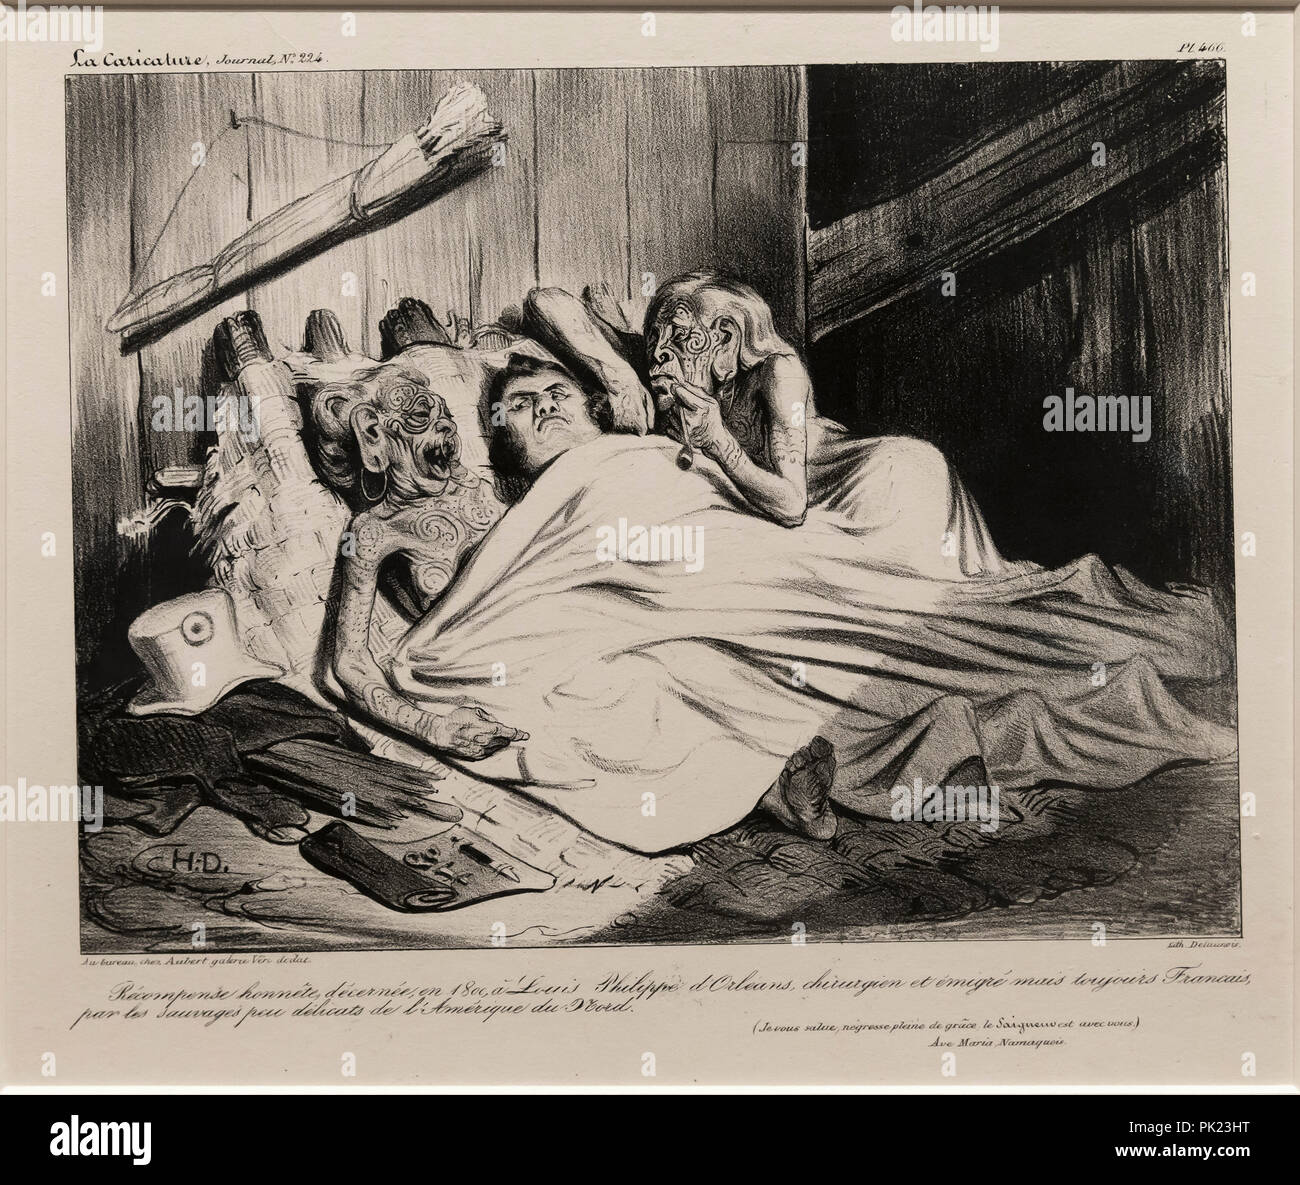 A Fair Reward presented in 1800 by the un-prudish savages of North America to Louis Philippe of Orleans, surgeon and expatriate, but still a Frenchman - Stock Image